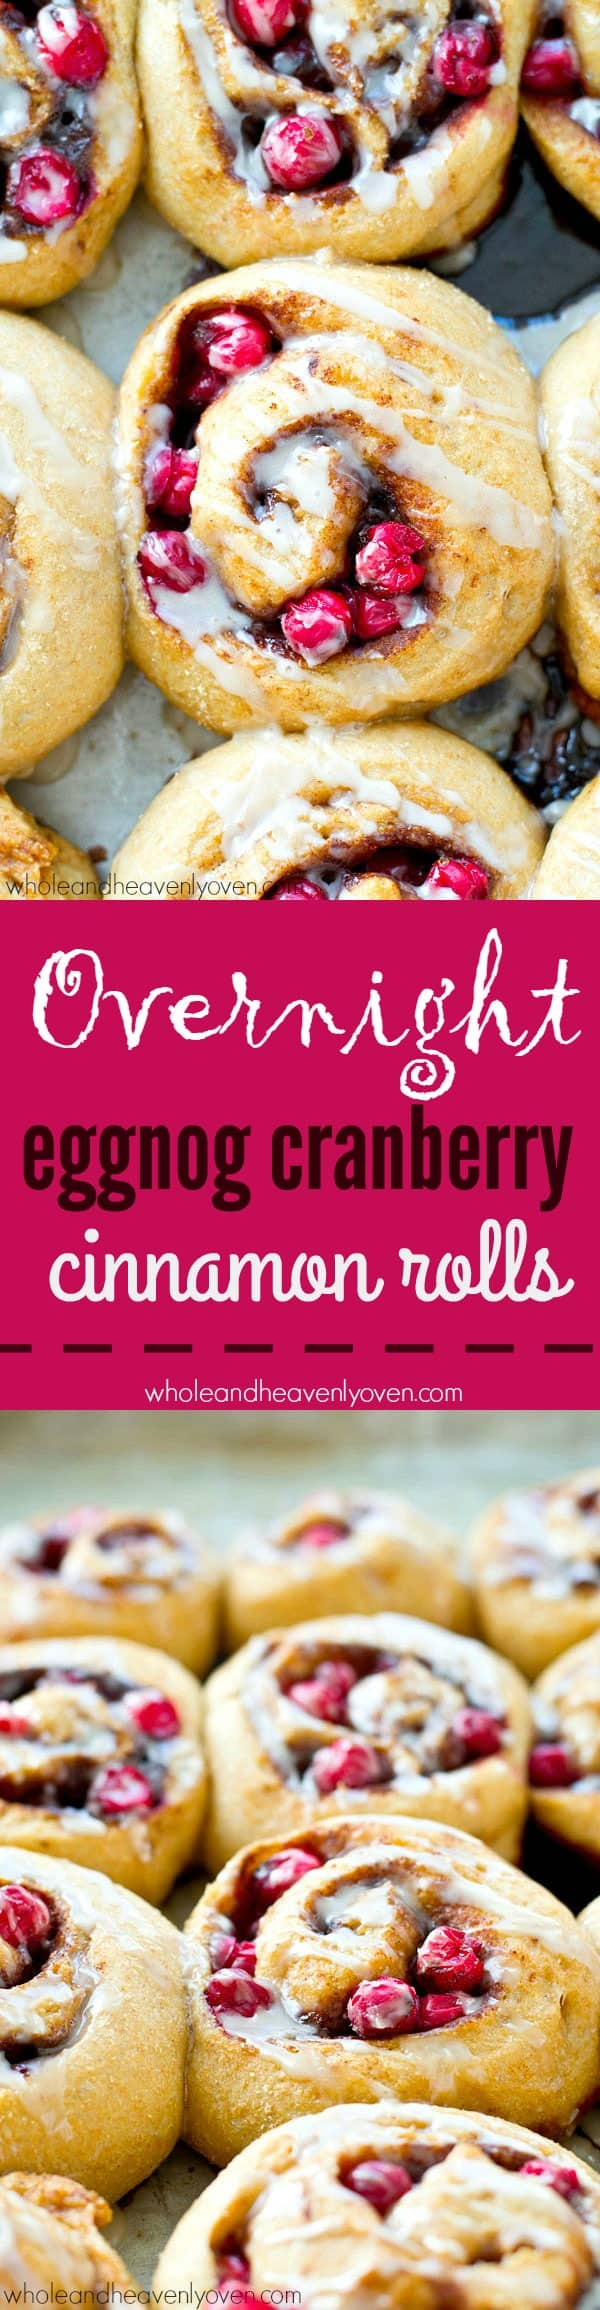 Let your fridge make your holiday breakfast for you! Eggnog makes these eggnog cranberry cinnamon rolls so ridiculously soft inside, you may very well eat the entire batch!